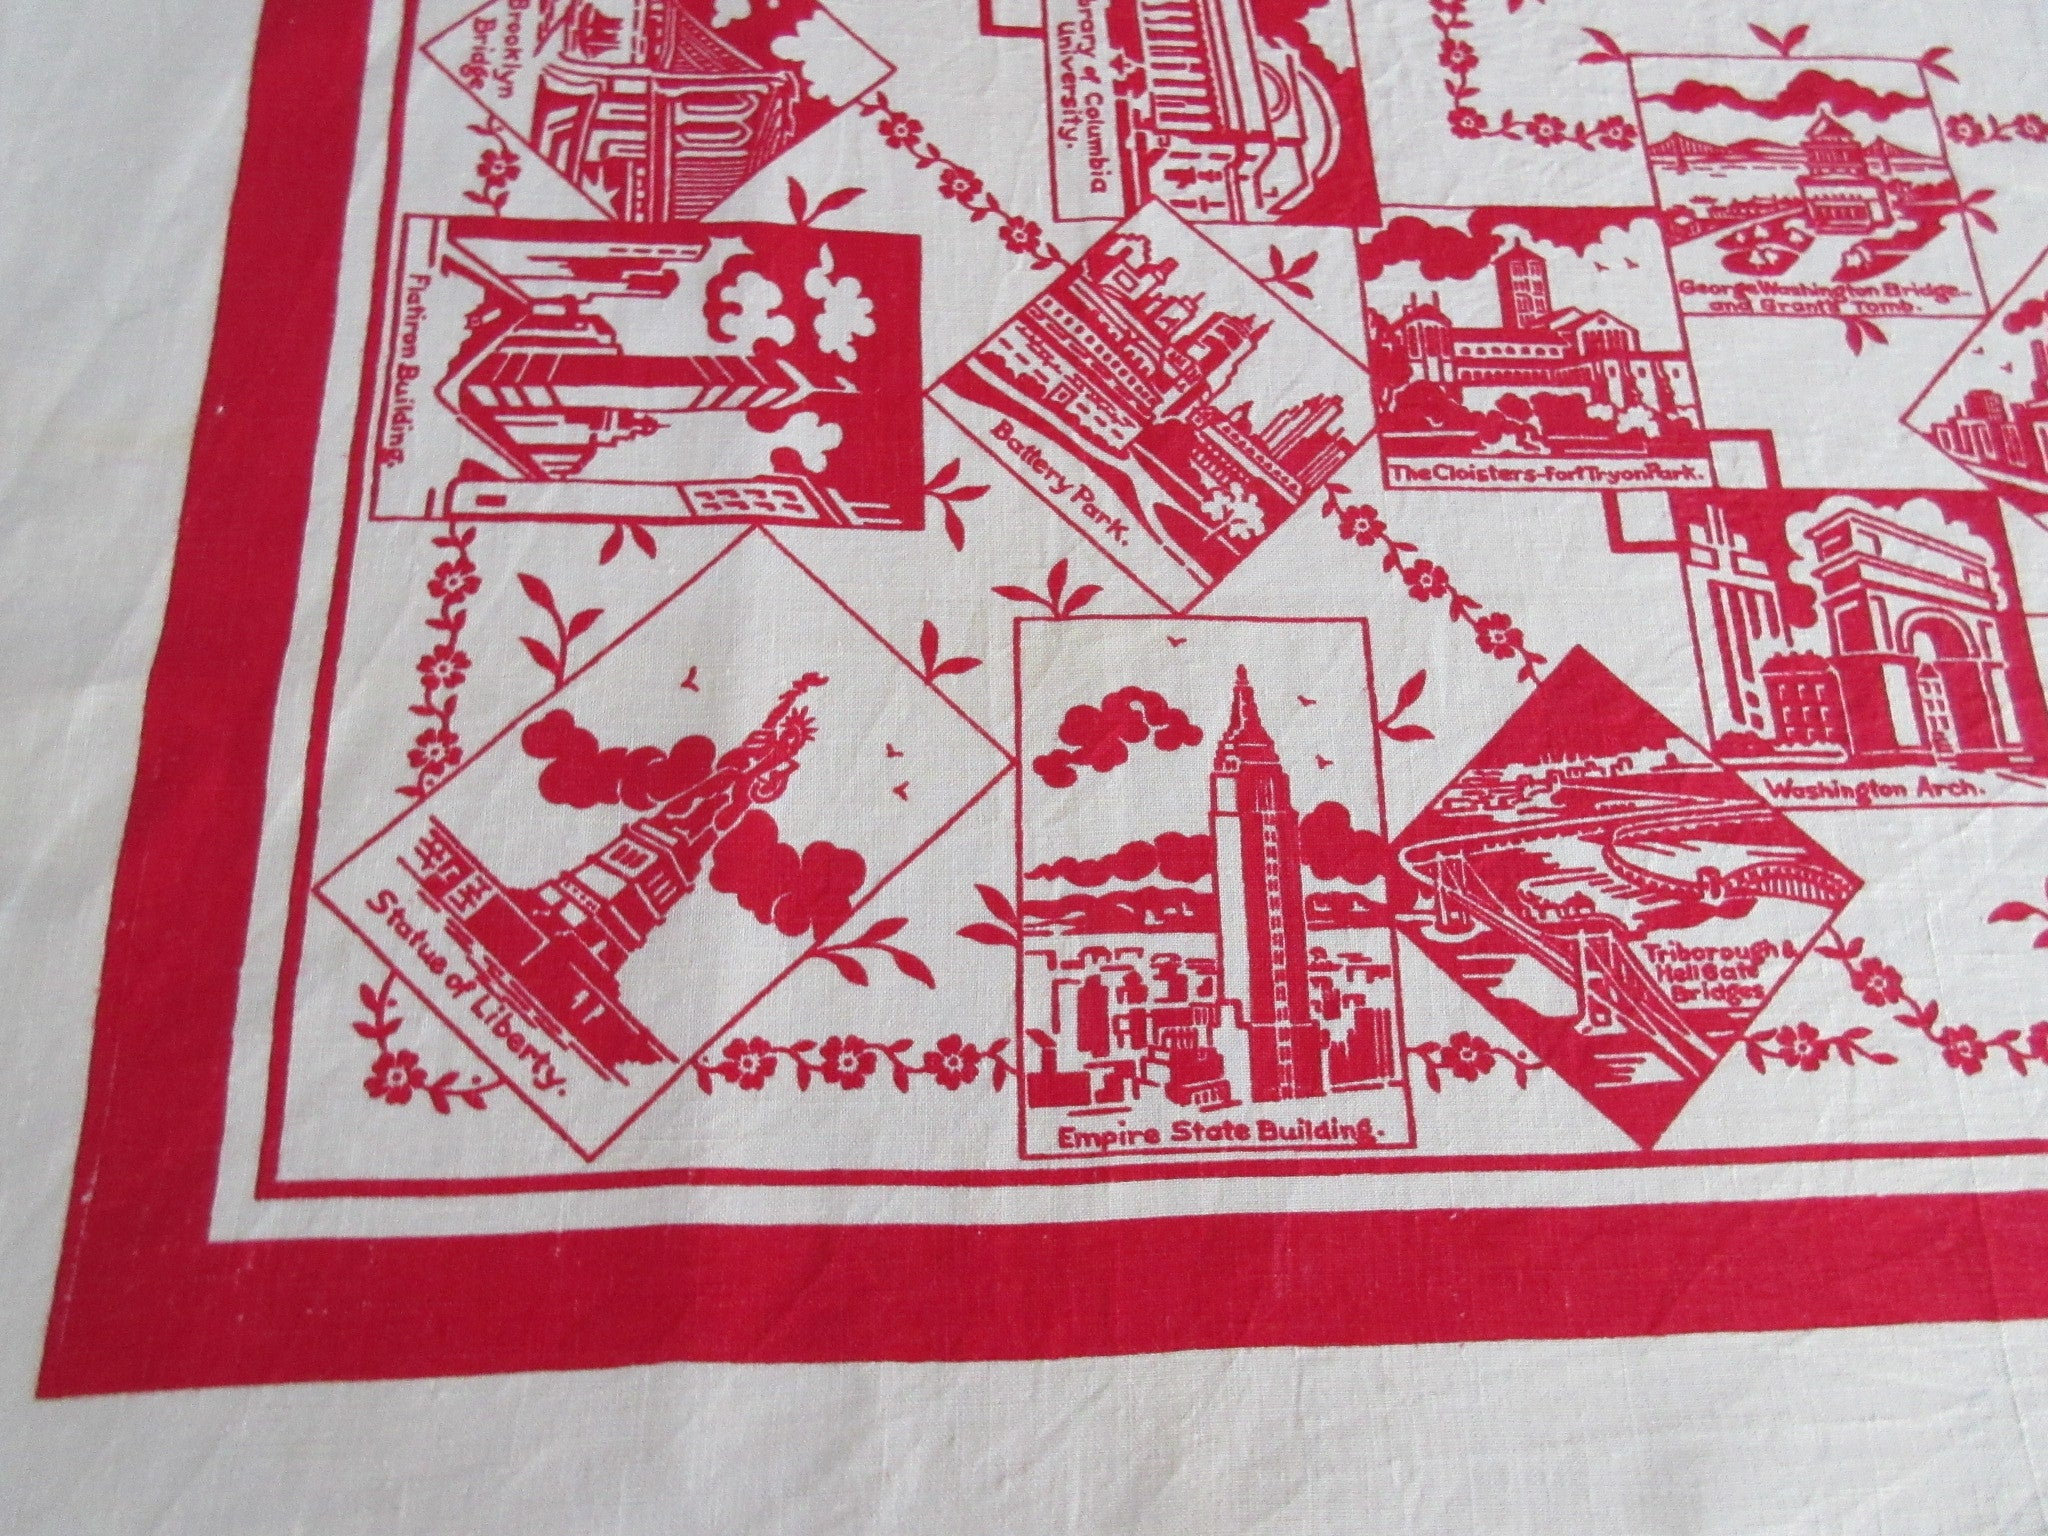 HTF New York 1939 Landmarks Linen Novelty Souvenir Vintage Printed Tablecloth (50 X 50)